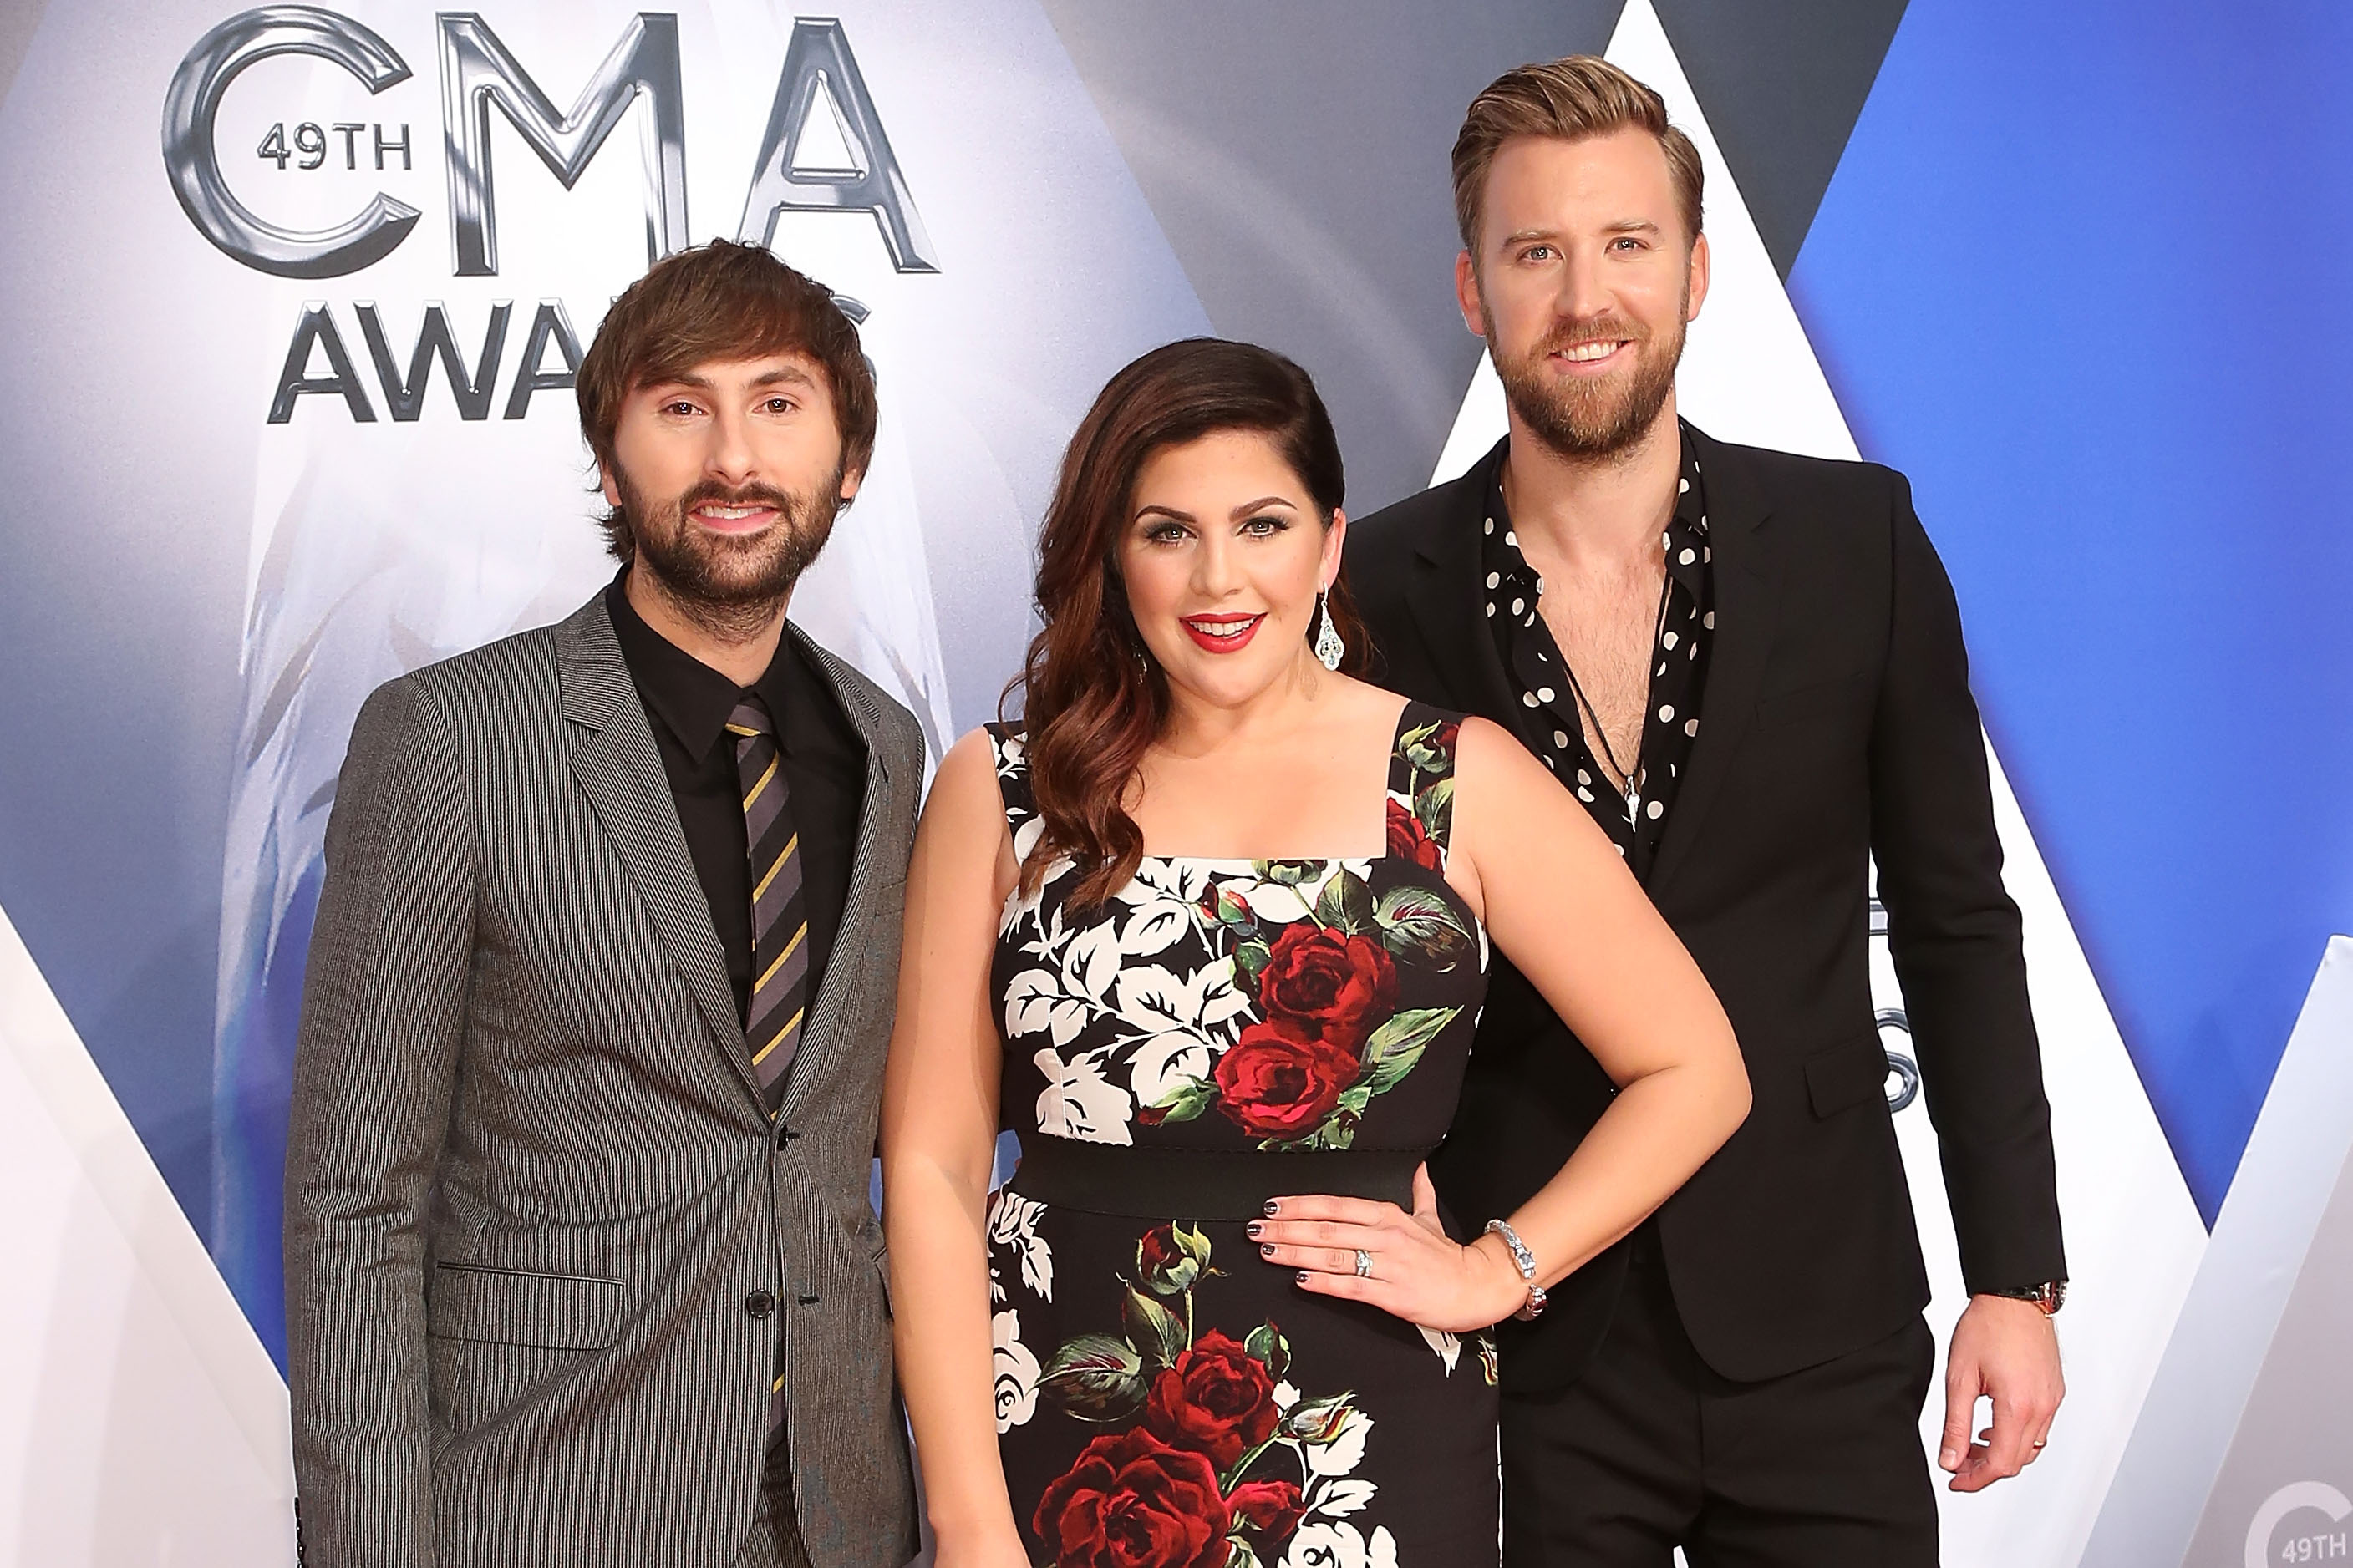 lady antebellum - photo #25